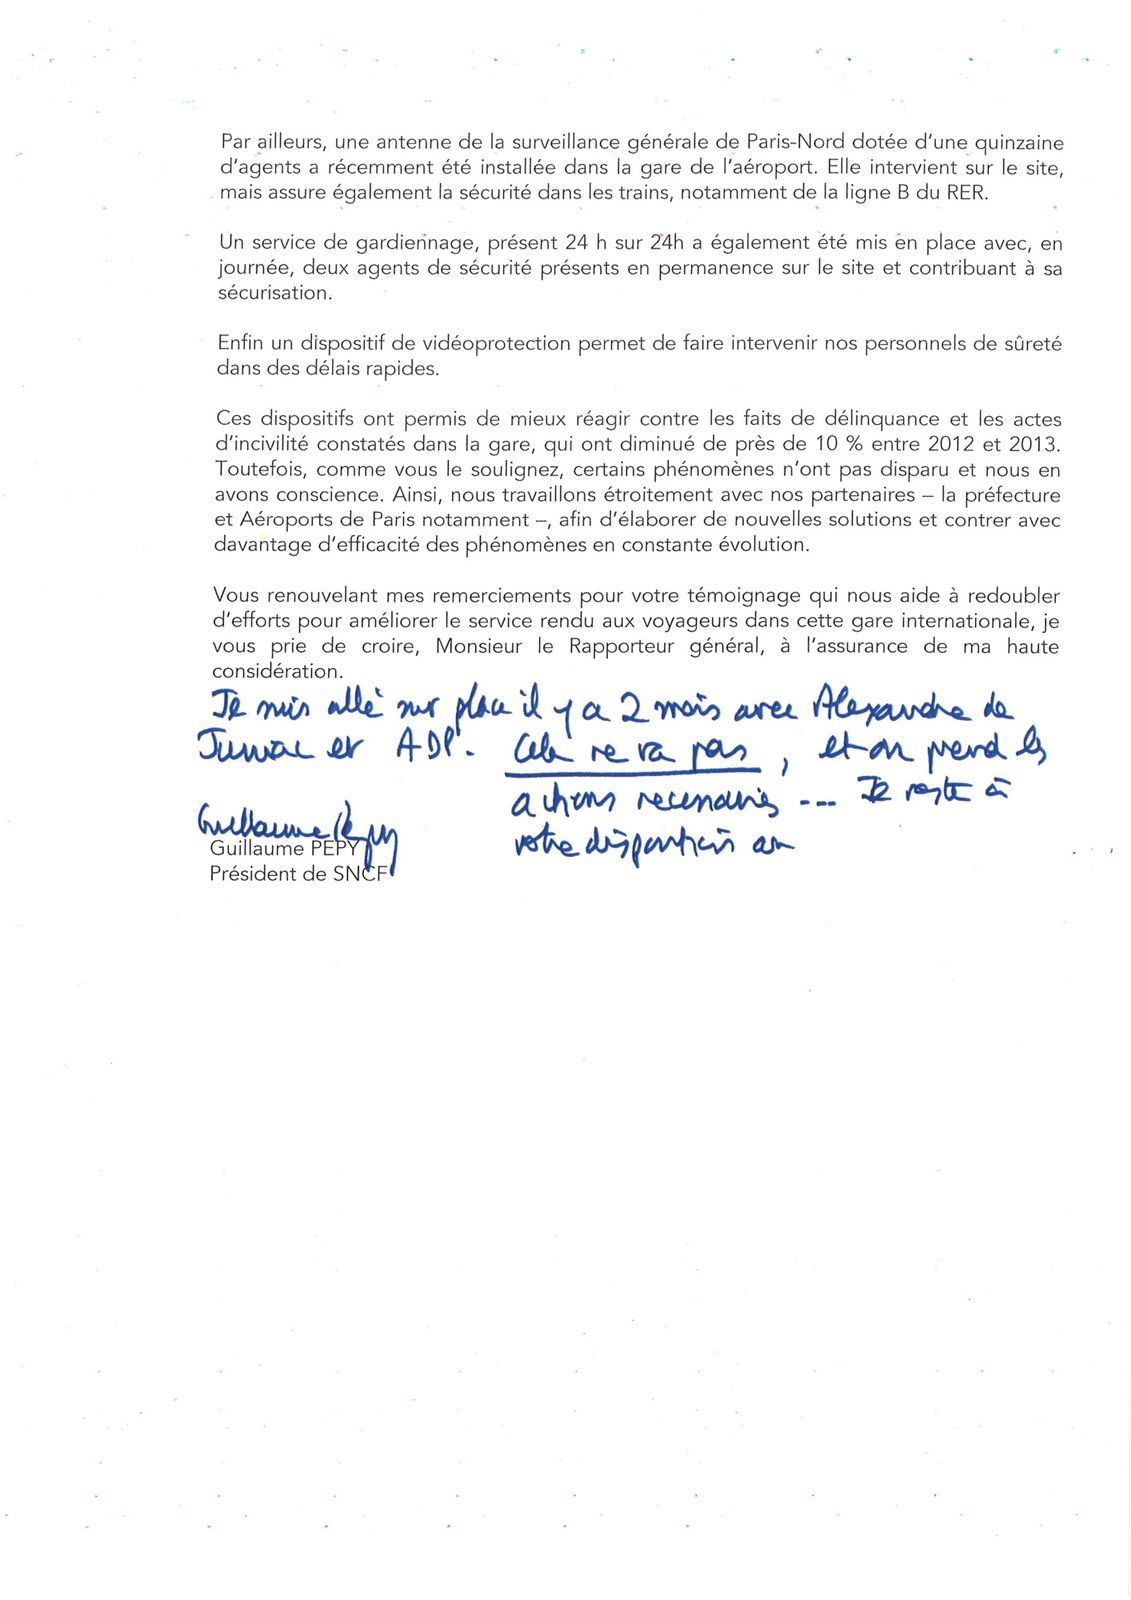 SNCF page 2